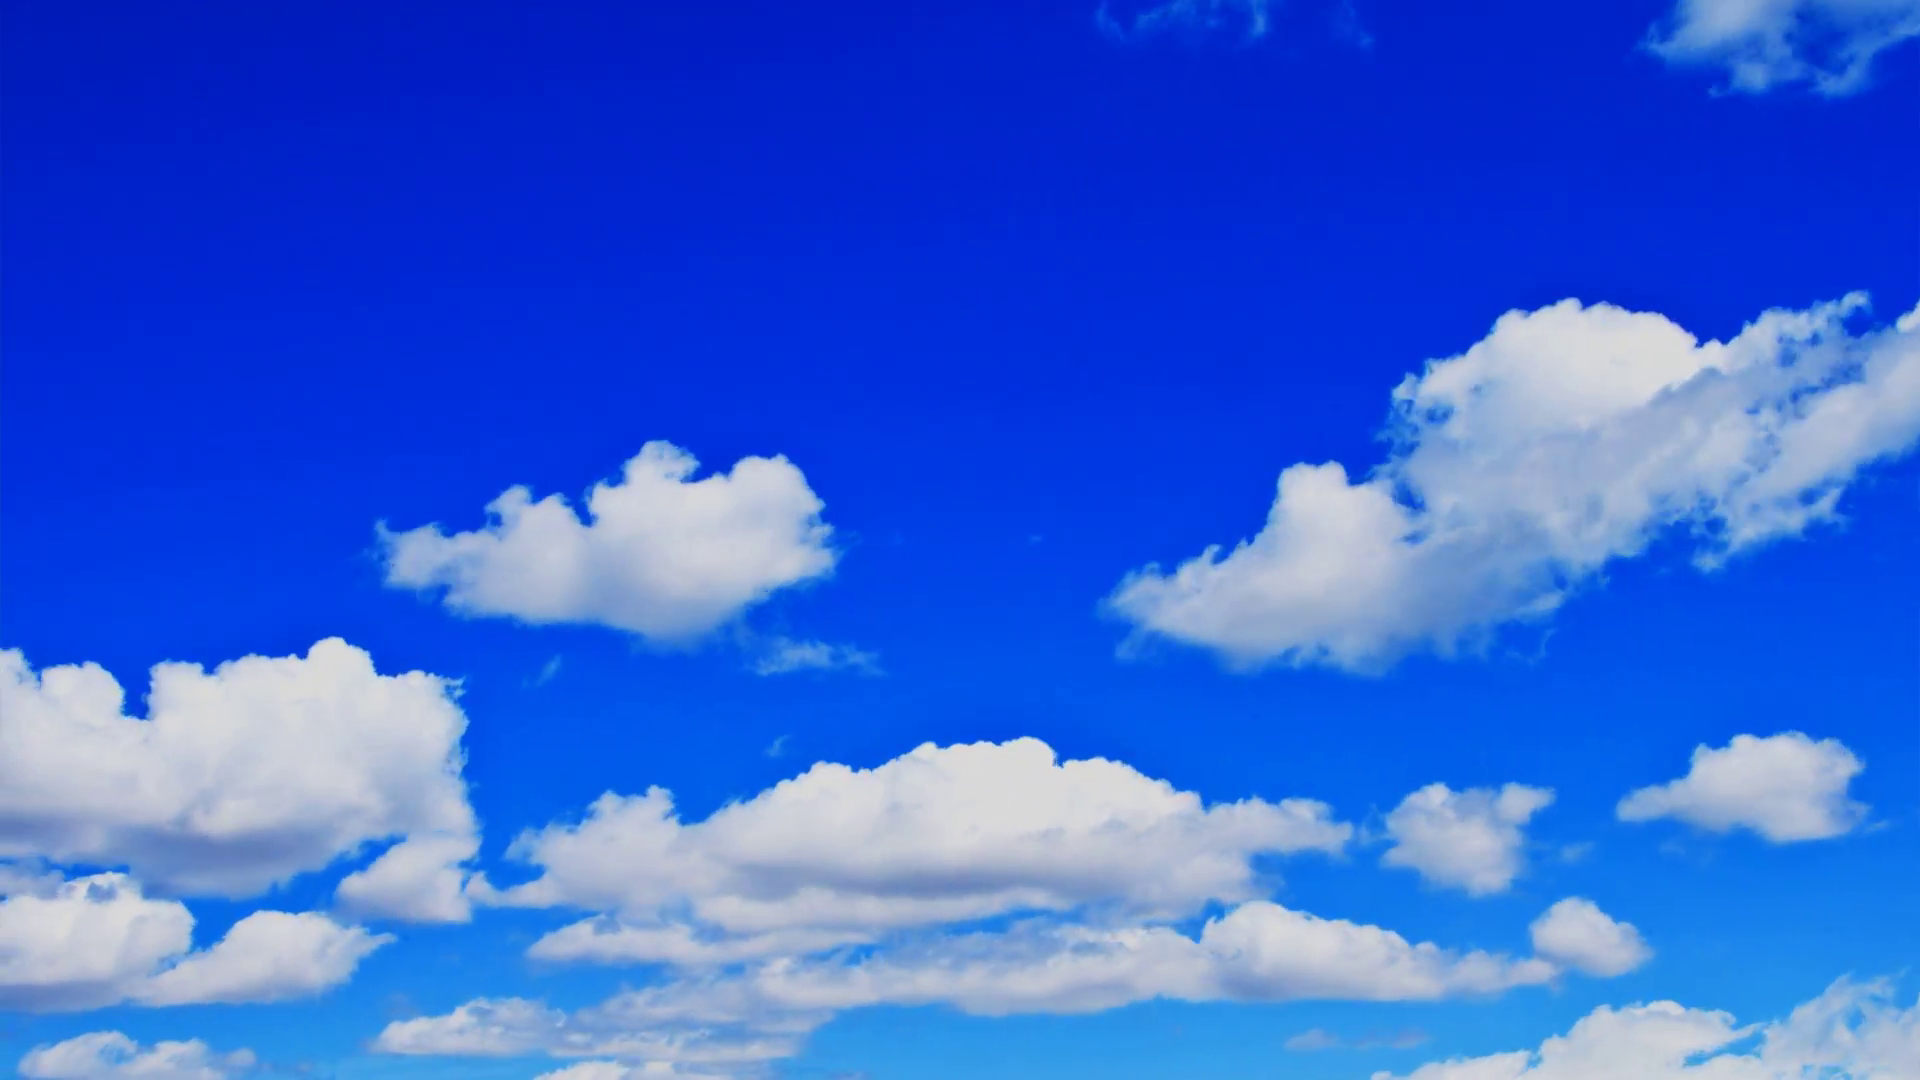 Free Photo: Blue Sky With Clouds